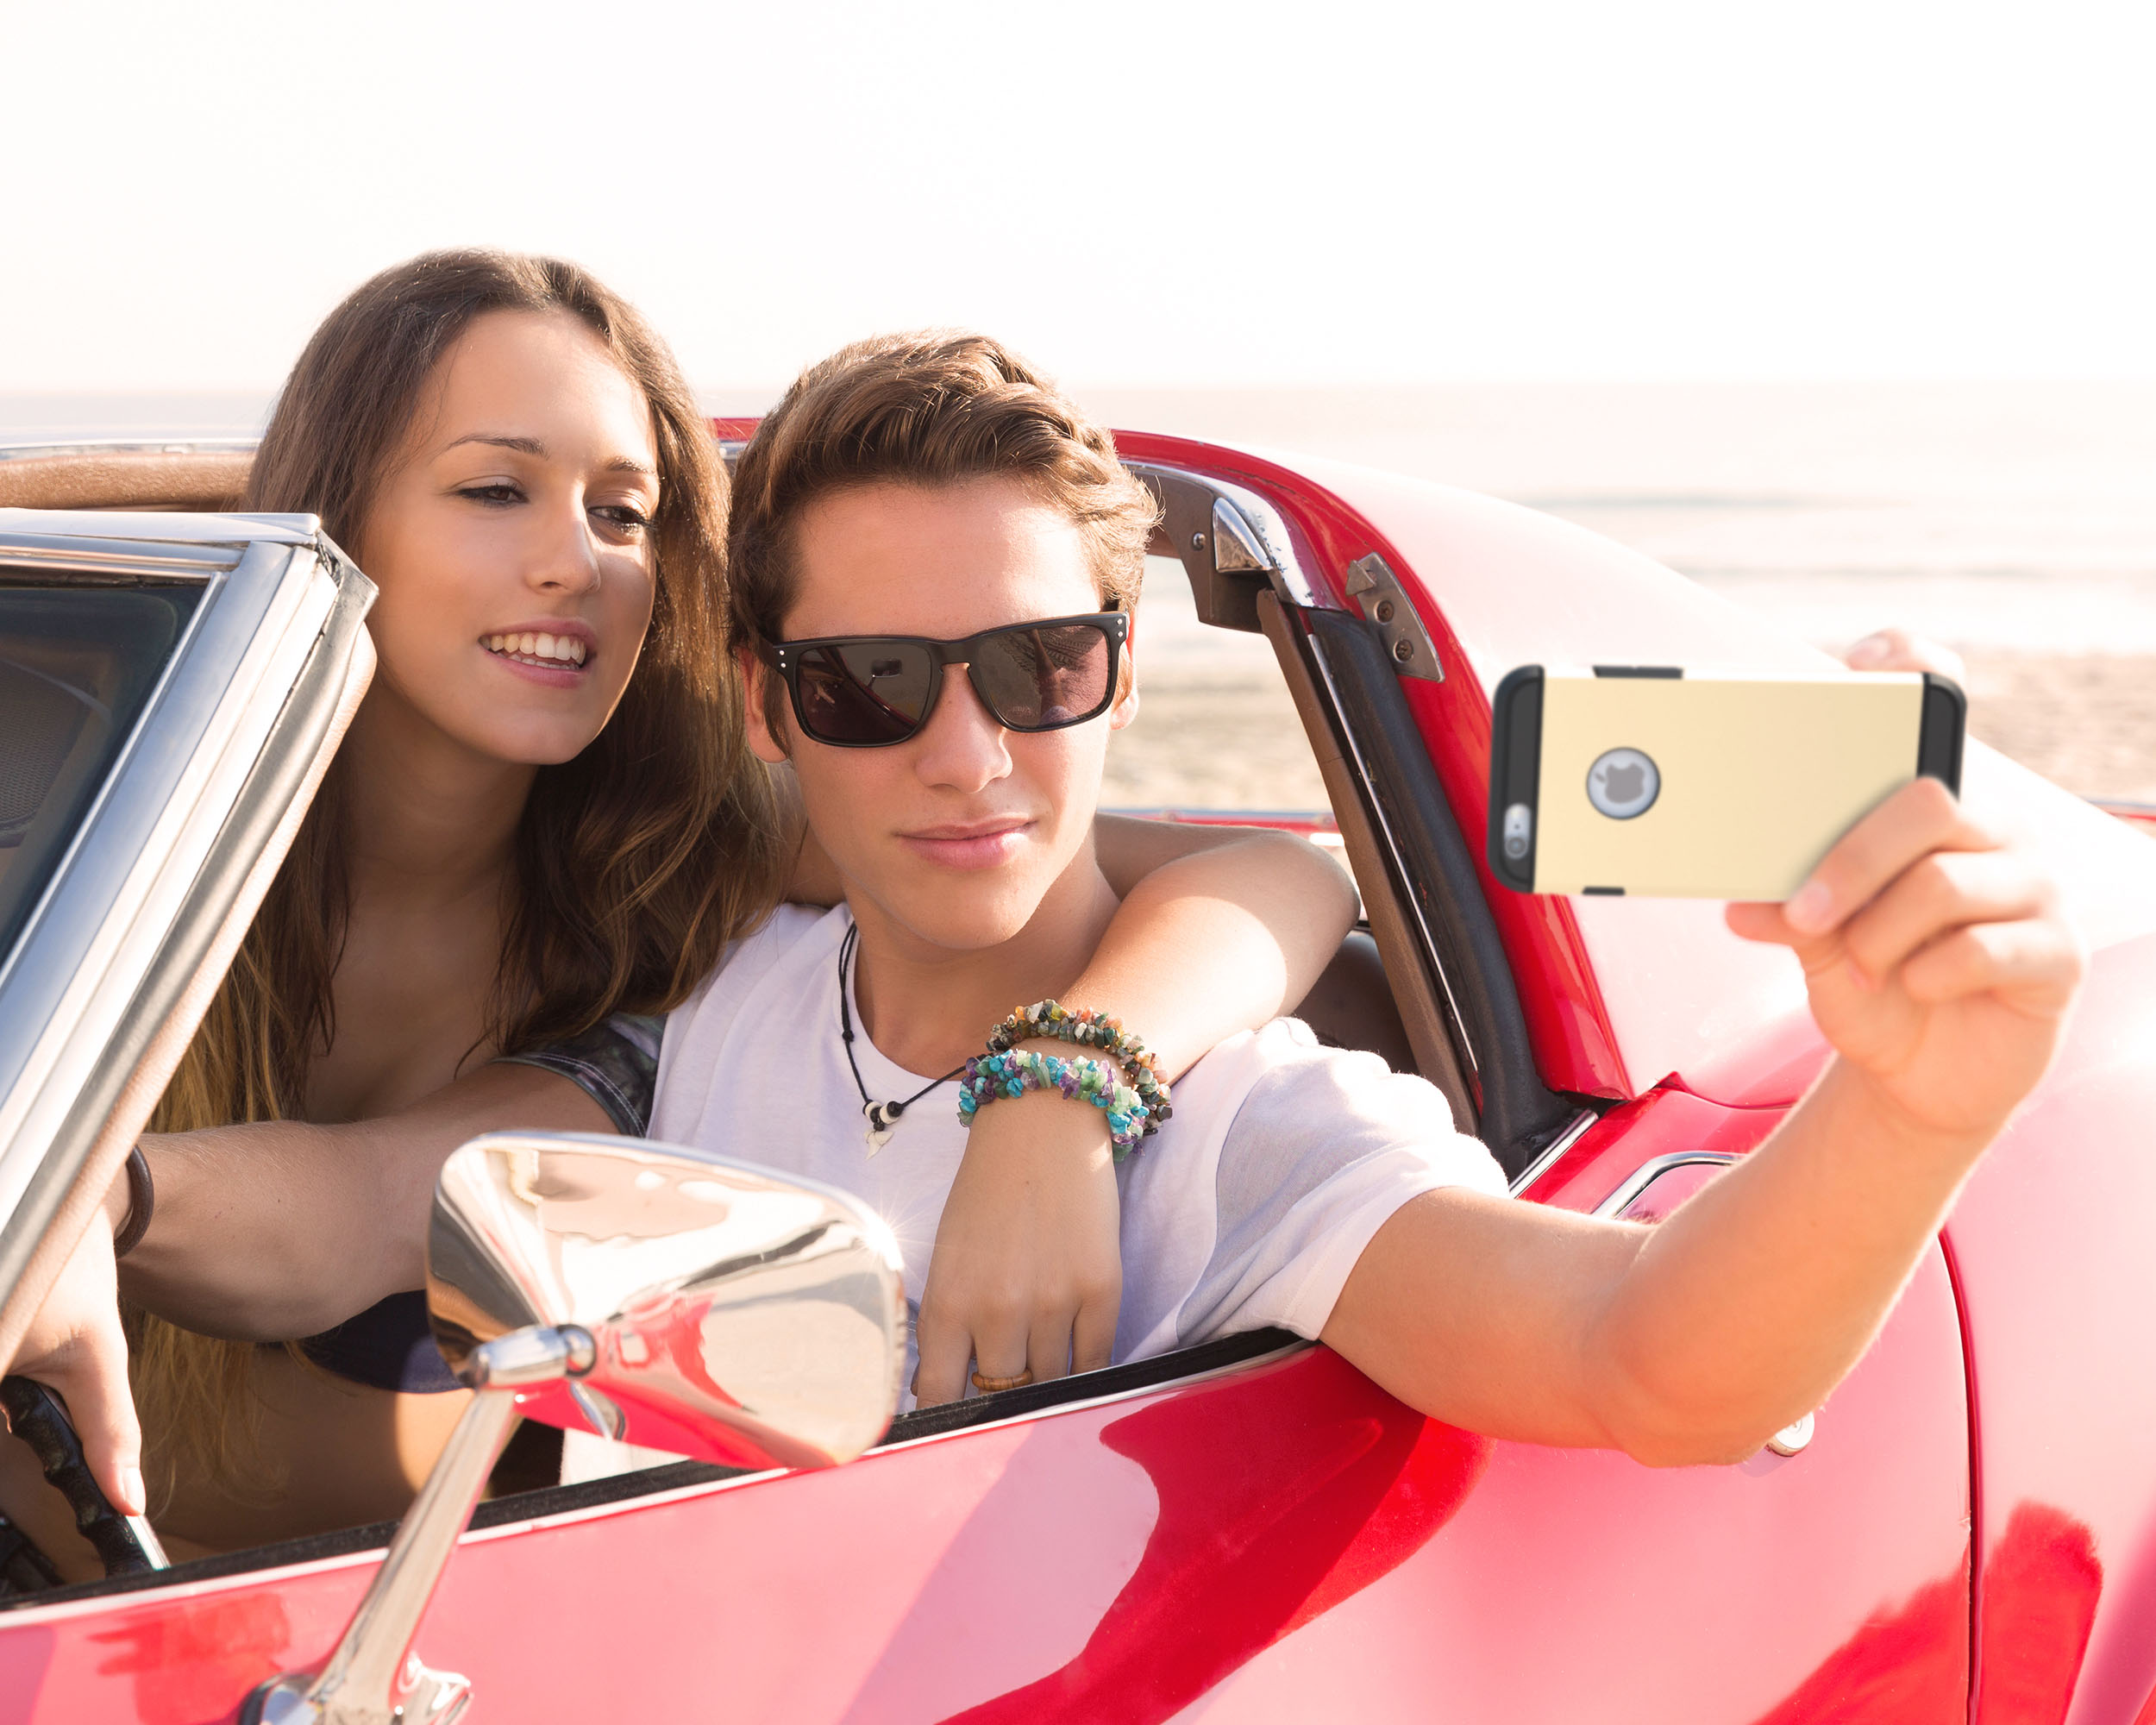 Teenagers in red car holding phone and taking pictures of themselves